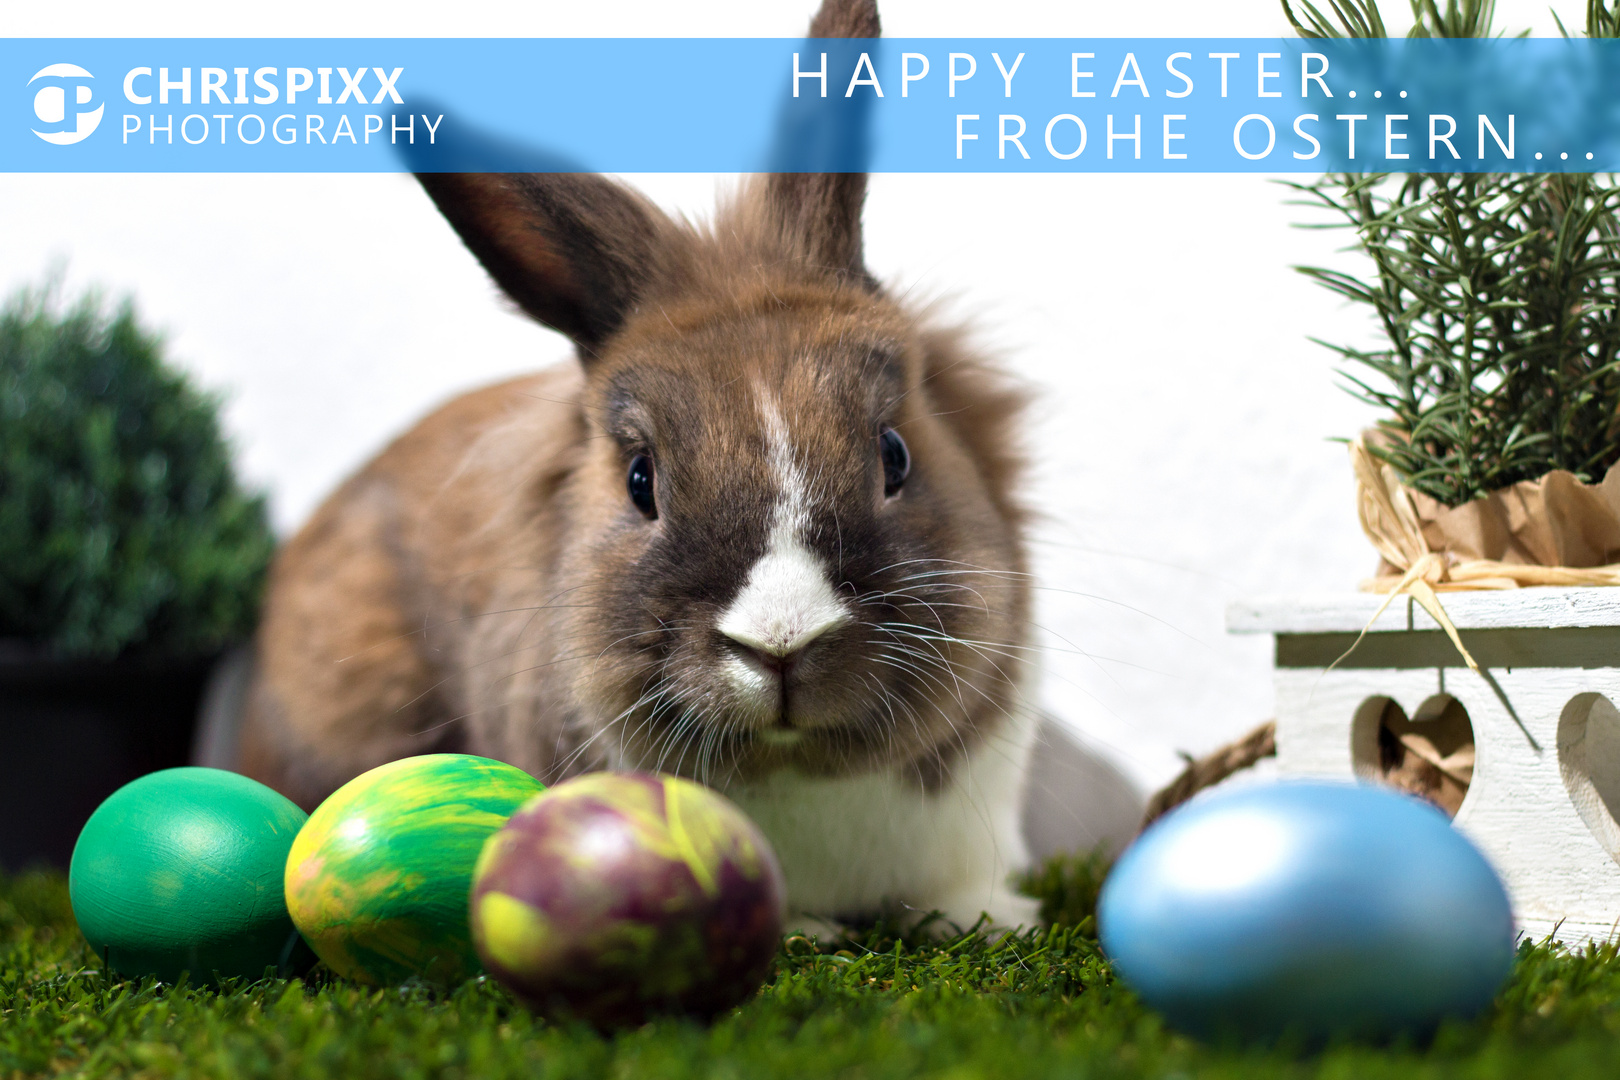 Happy Easter... frohe Ostern!